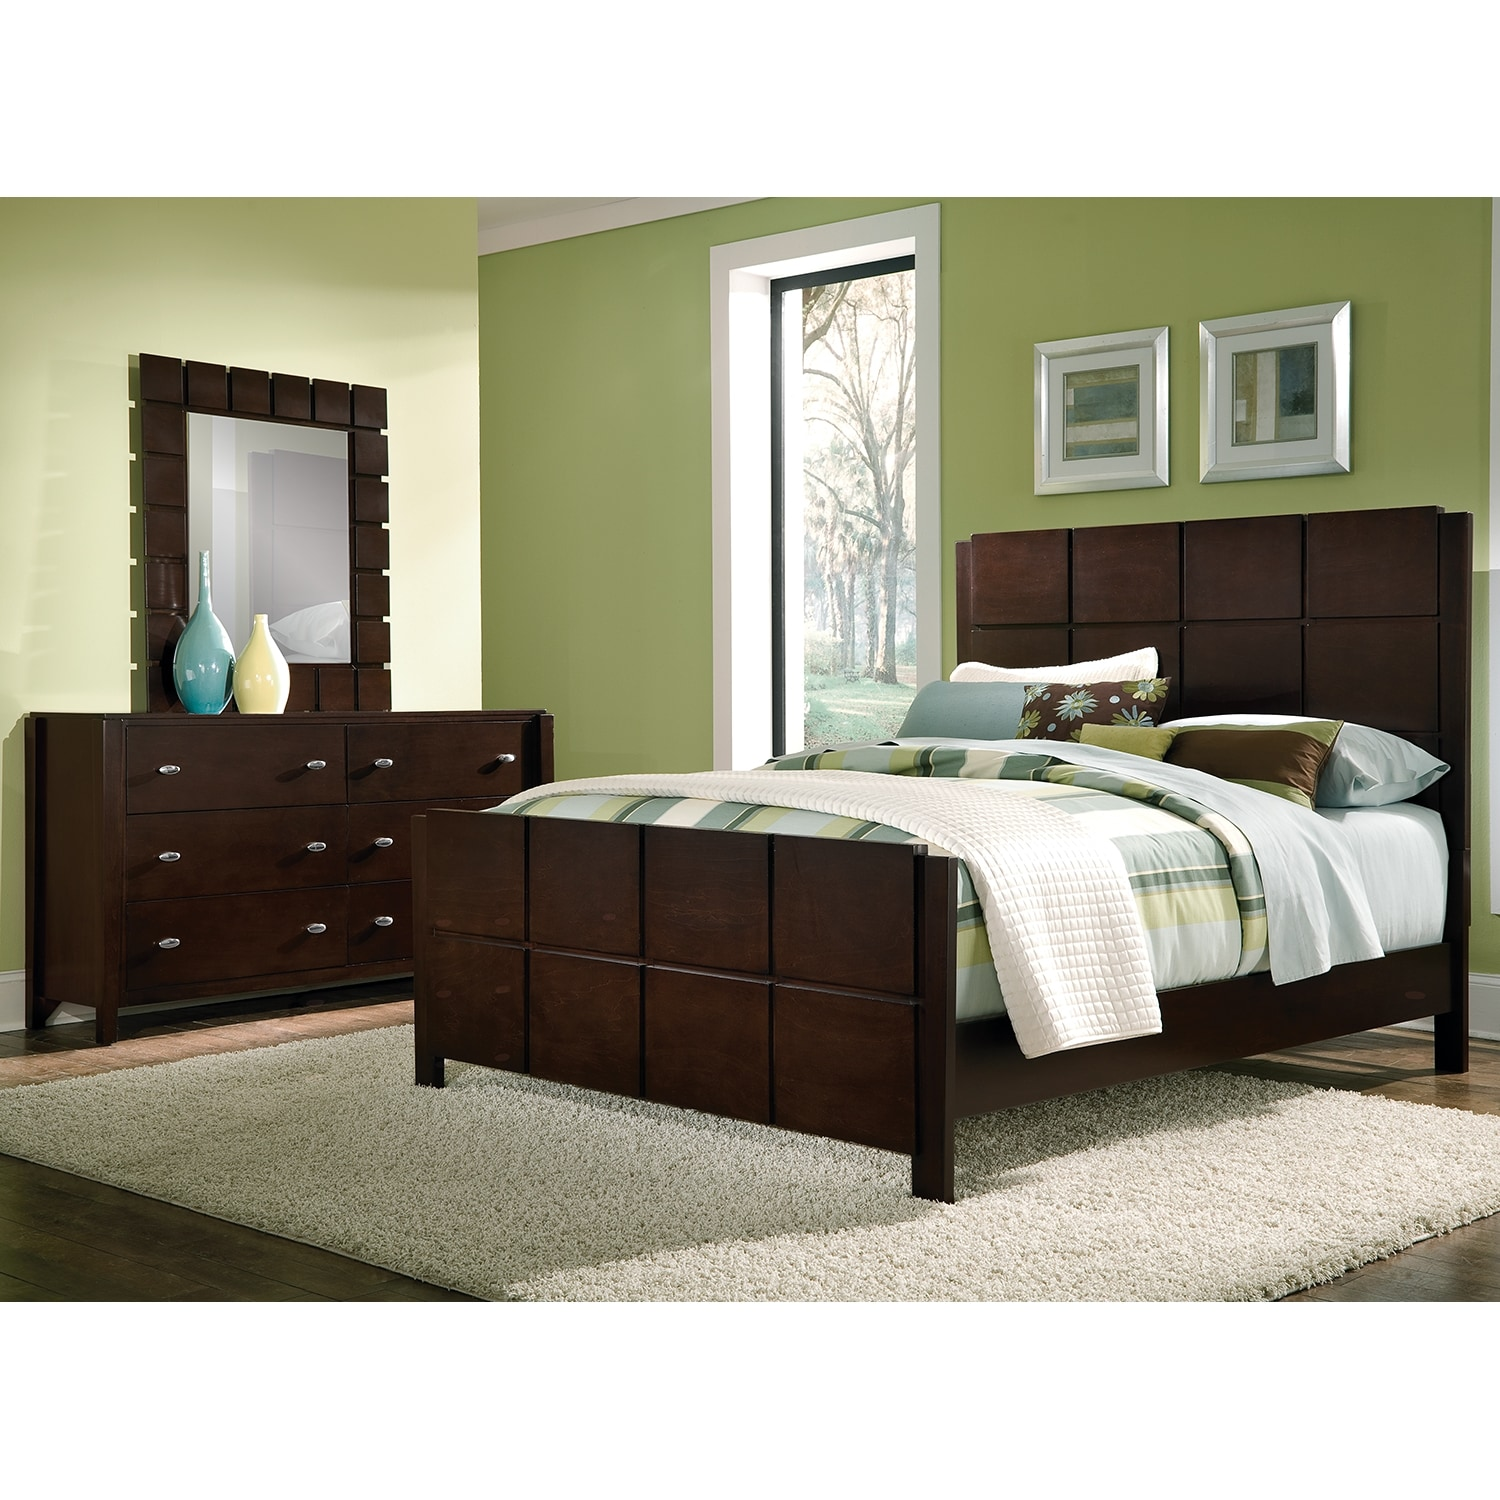 Mosaic 5 pc queen bedroom american signature furniture for Furniture bedroom